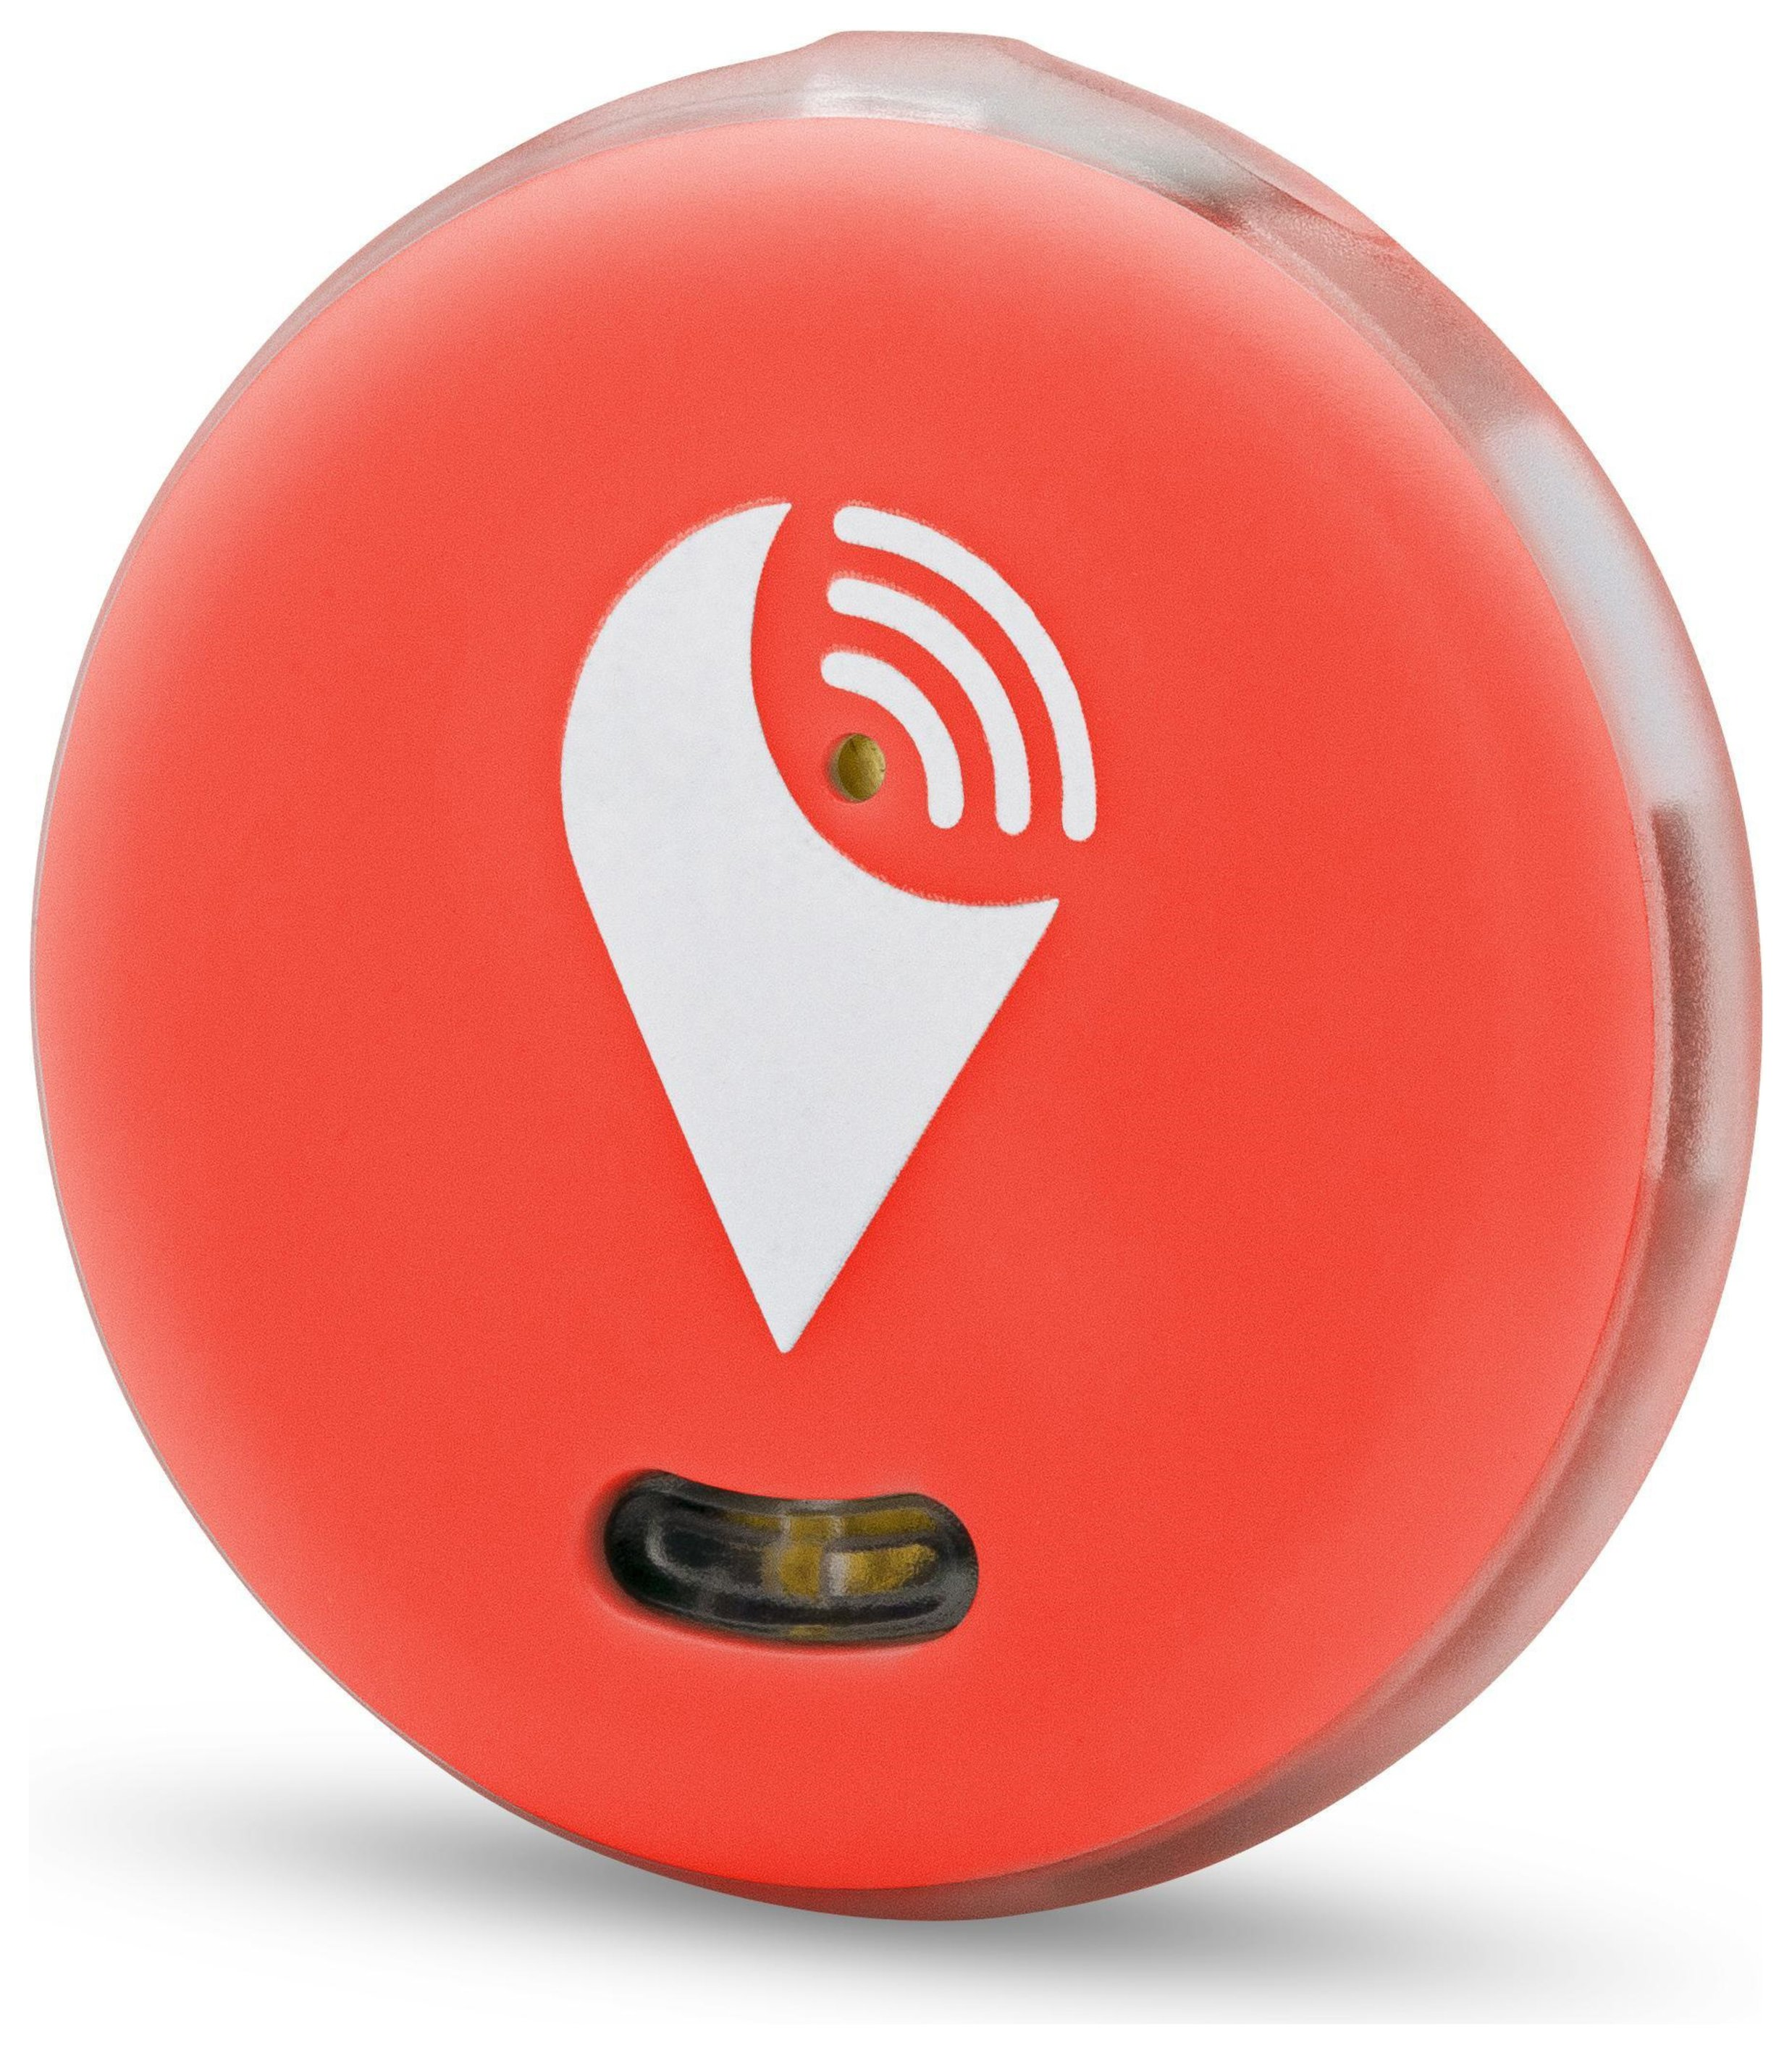 trackr-pixel-tracking-device-1-pack-red